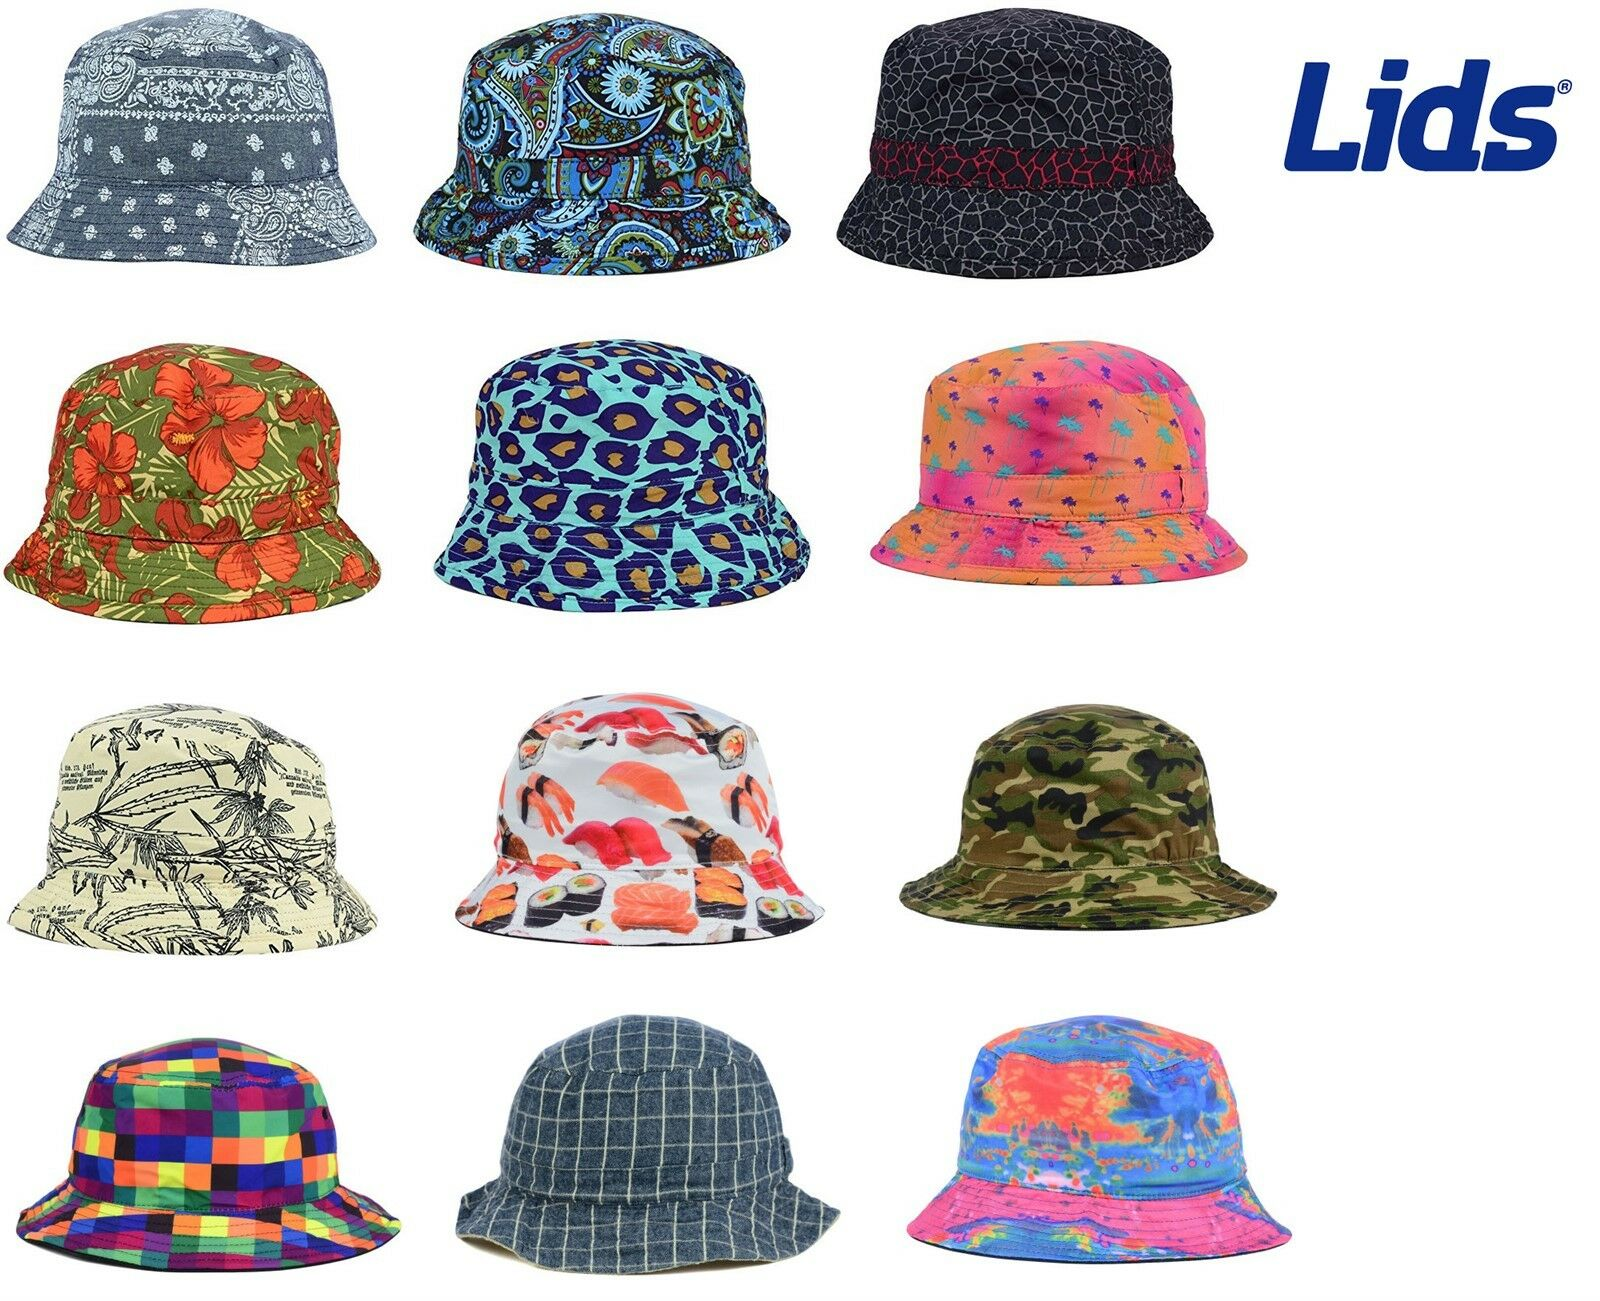 df9fe8b9ae1e4 LIDS Reversible Printed Bucket Hat - MANY STYLES - ALL SIZES